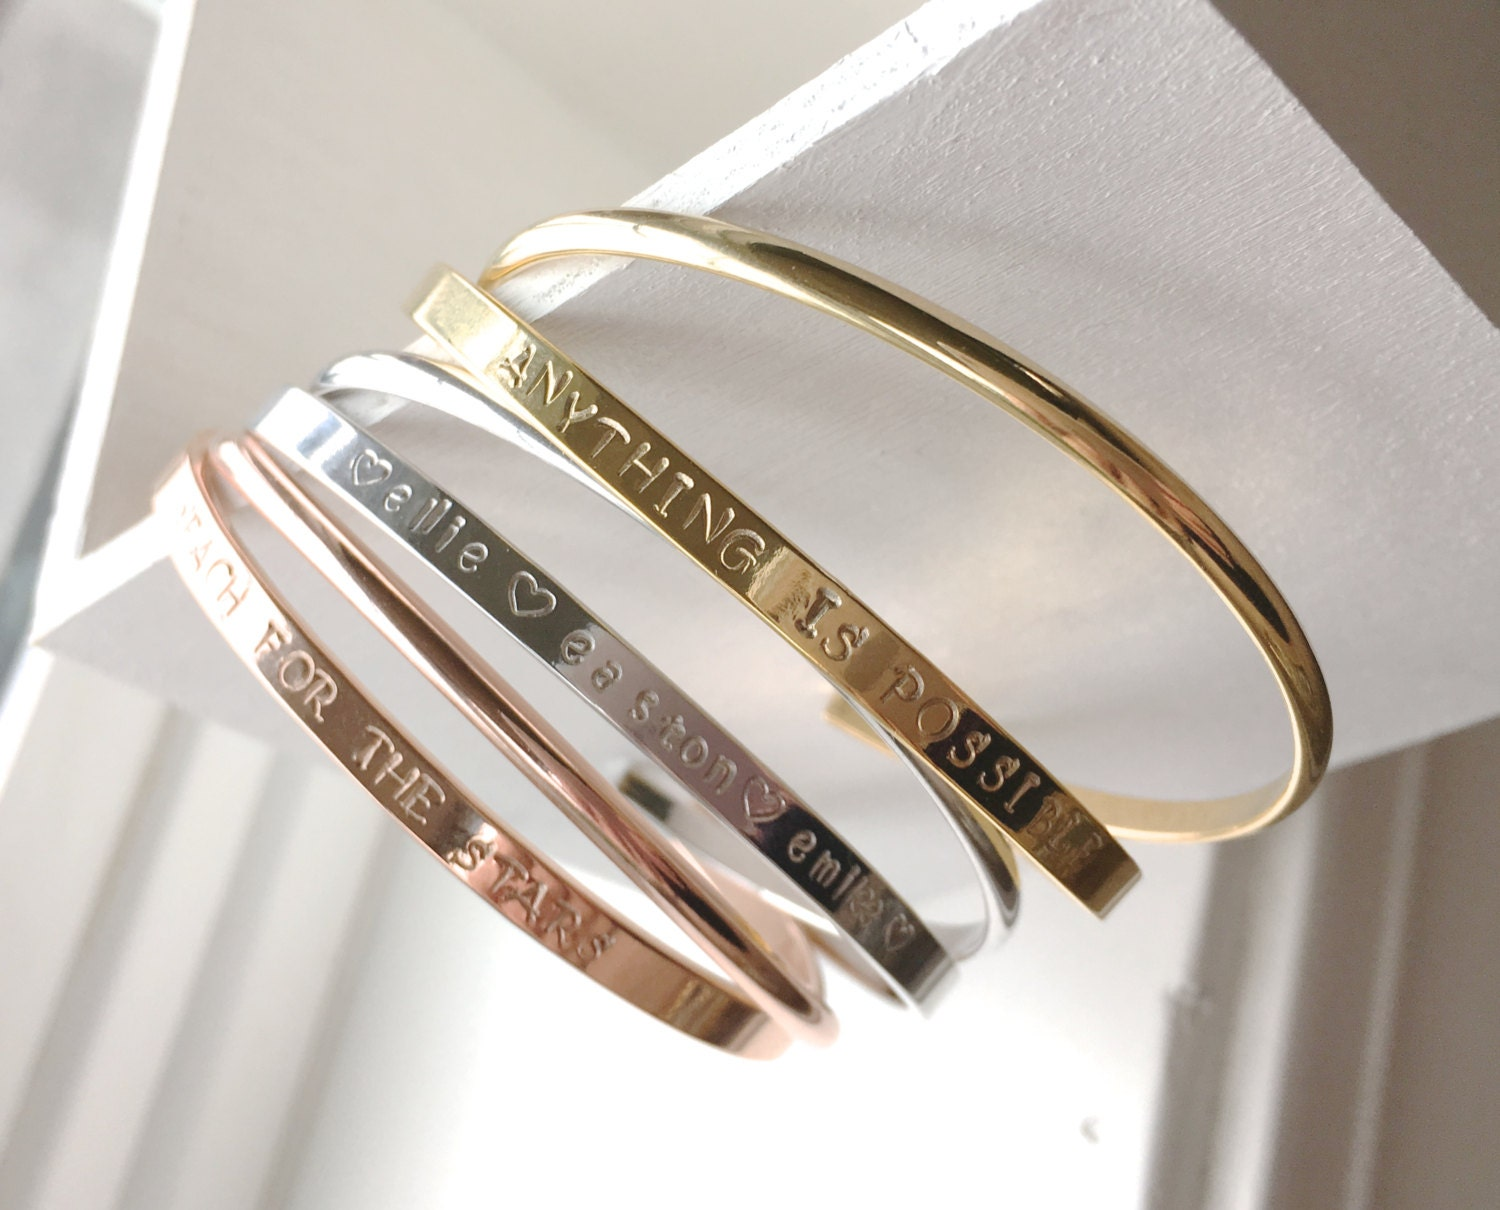 to item com bangle bracelet buy jewelry pet at charms two personalized name add personalizationmall and see any up more bangles